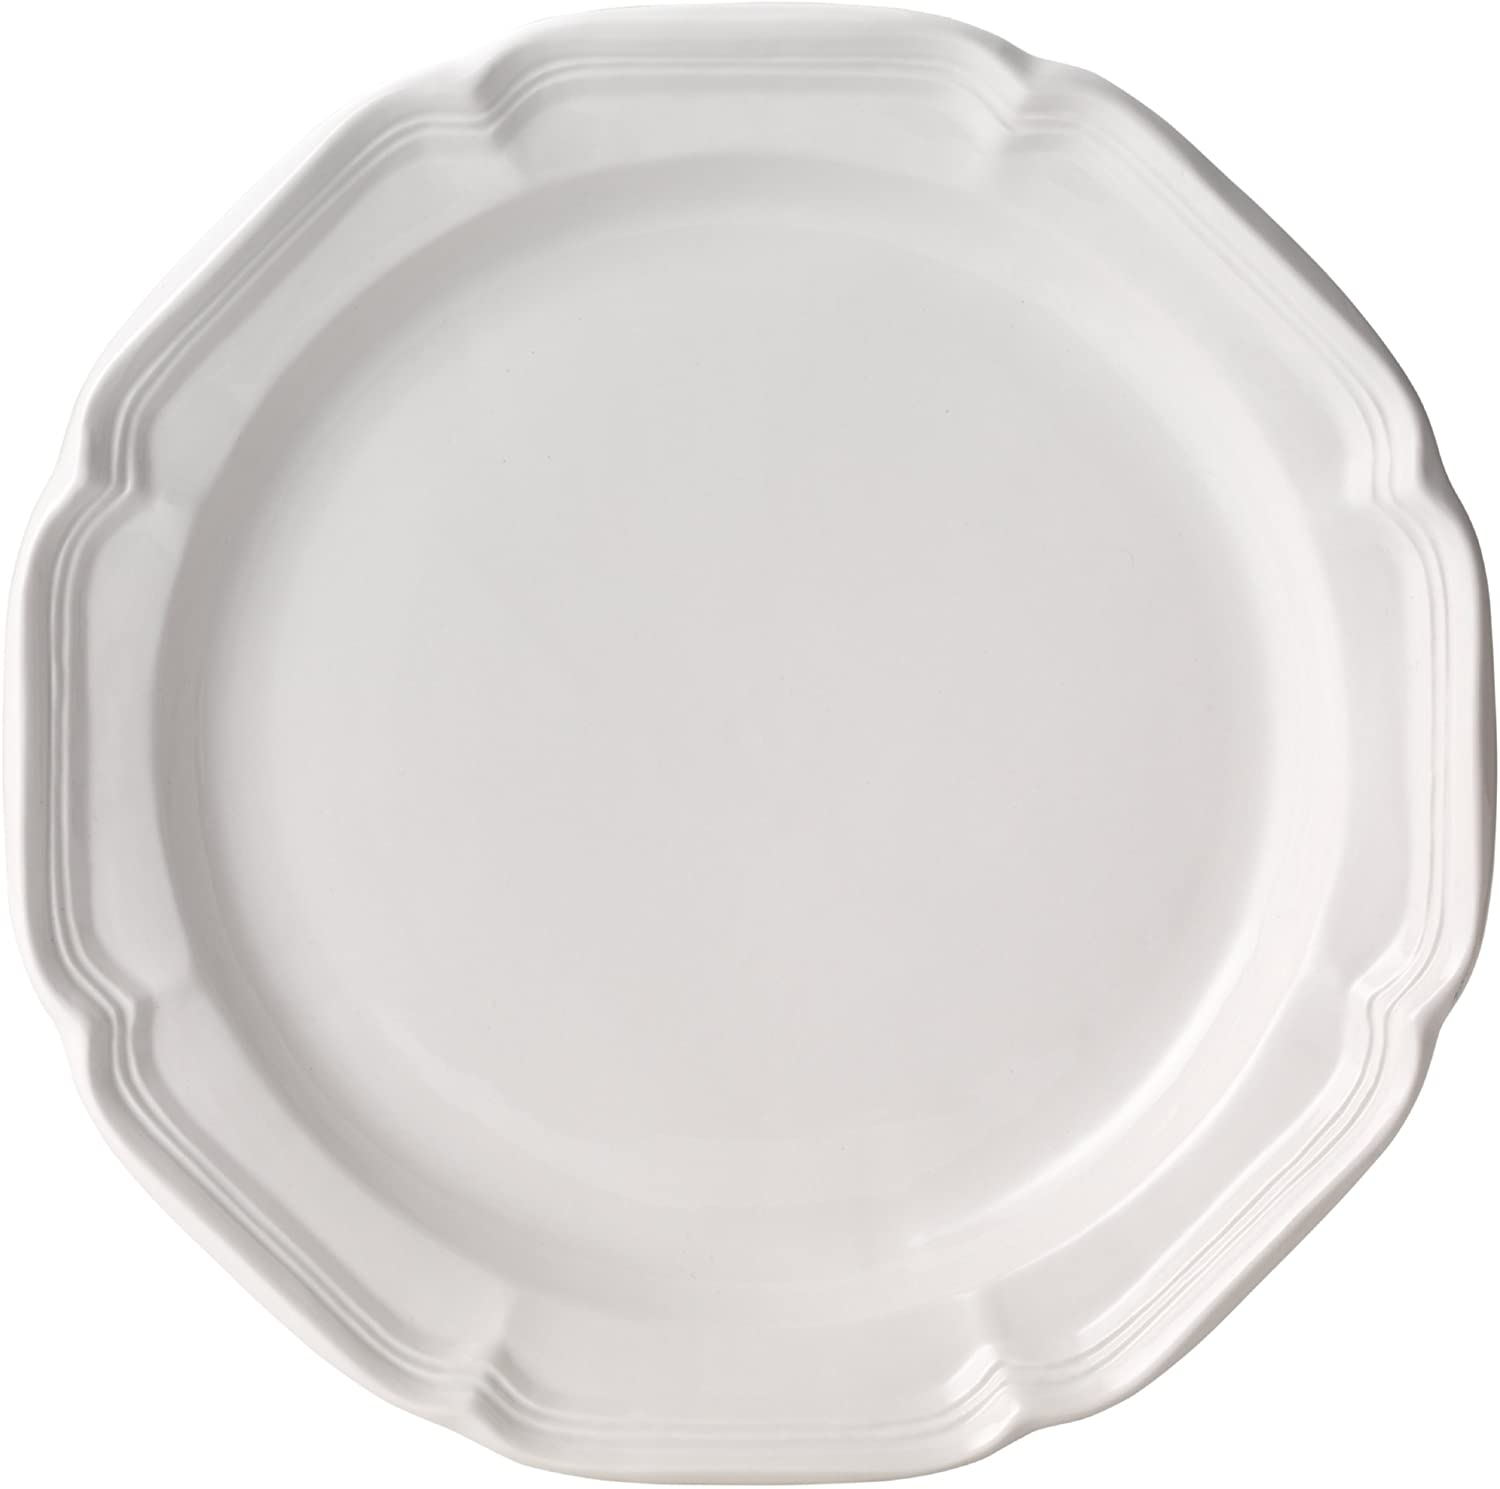 | Mikasa French Countryside Dinner Plate, White, 10.75-Inch - F9000-201: Cereal Bowls